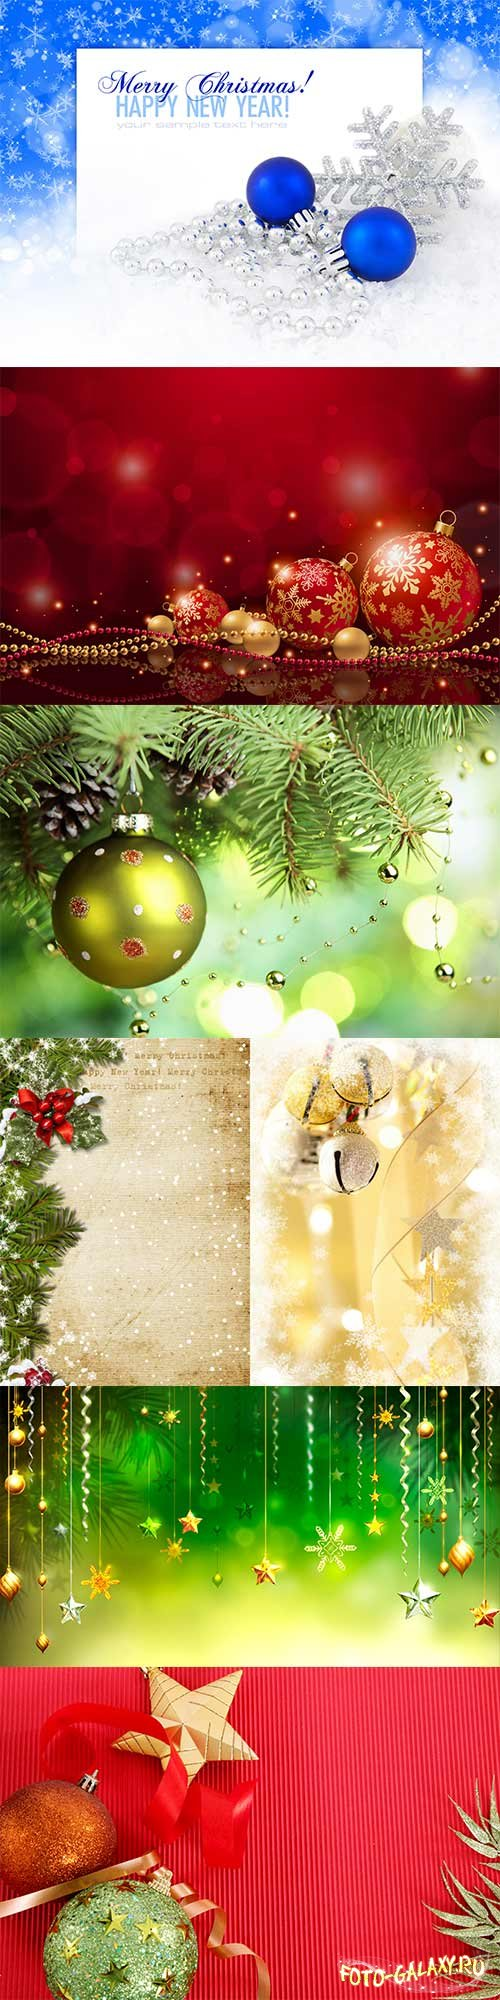 Christmas bitmap backgrounds 6